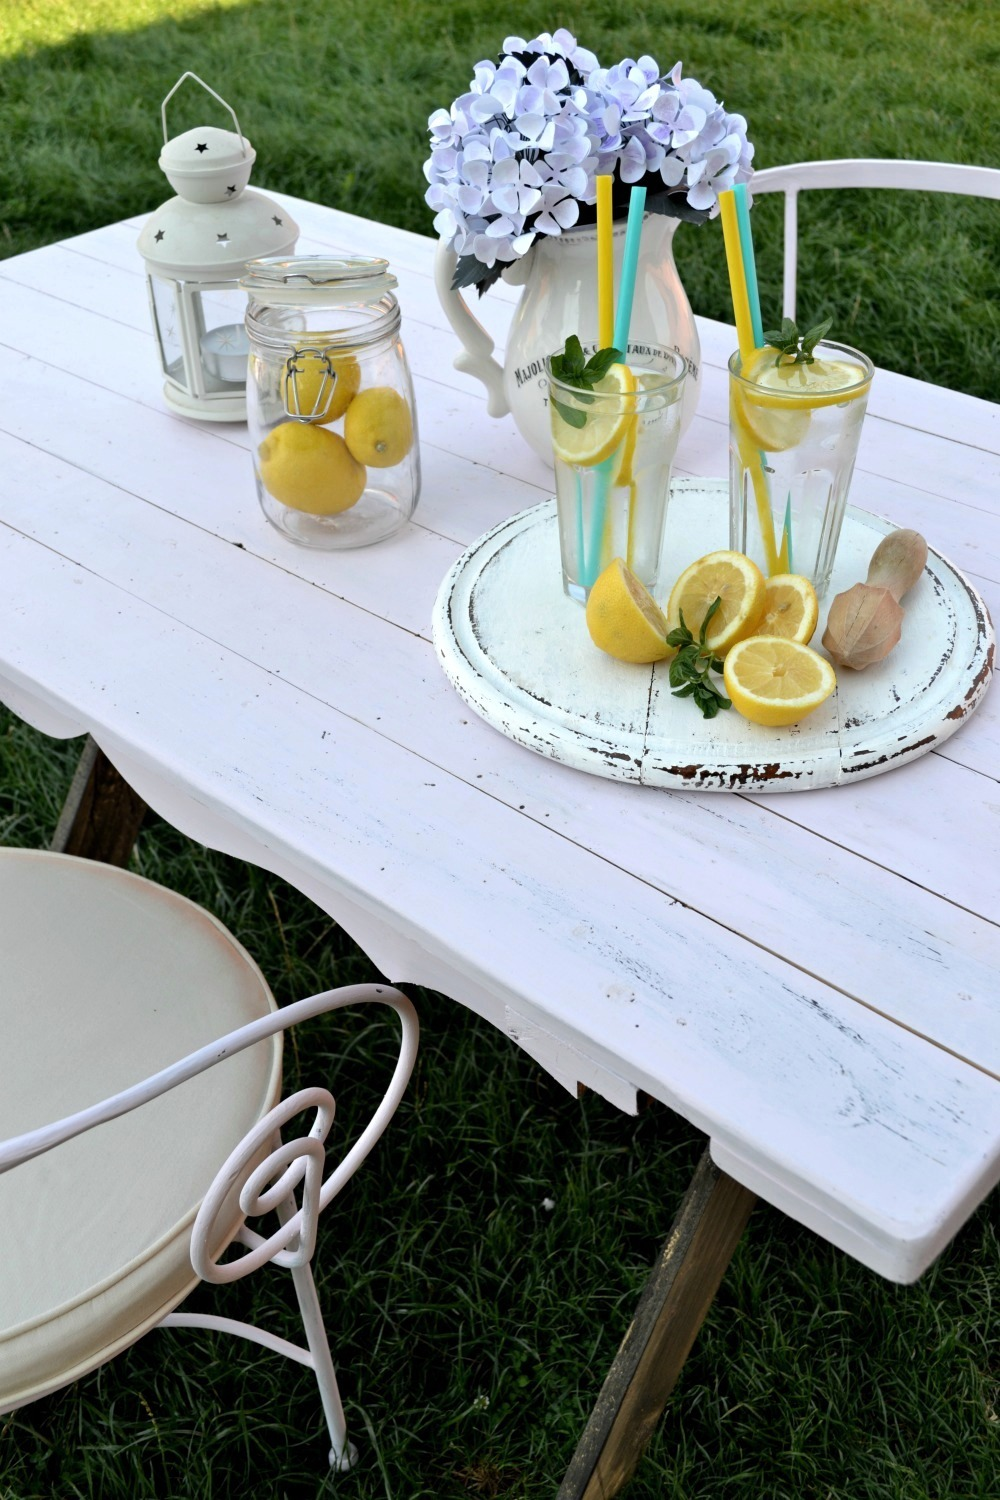 DIY Farmhouse Table for Two from Dreams Factory